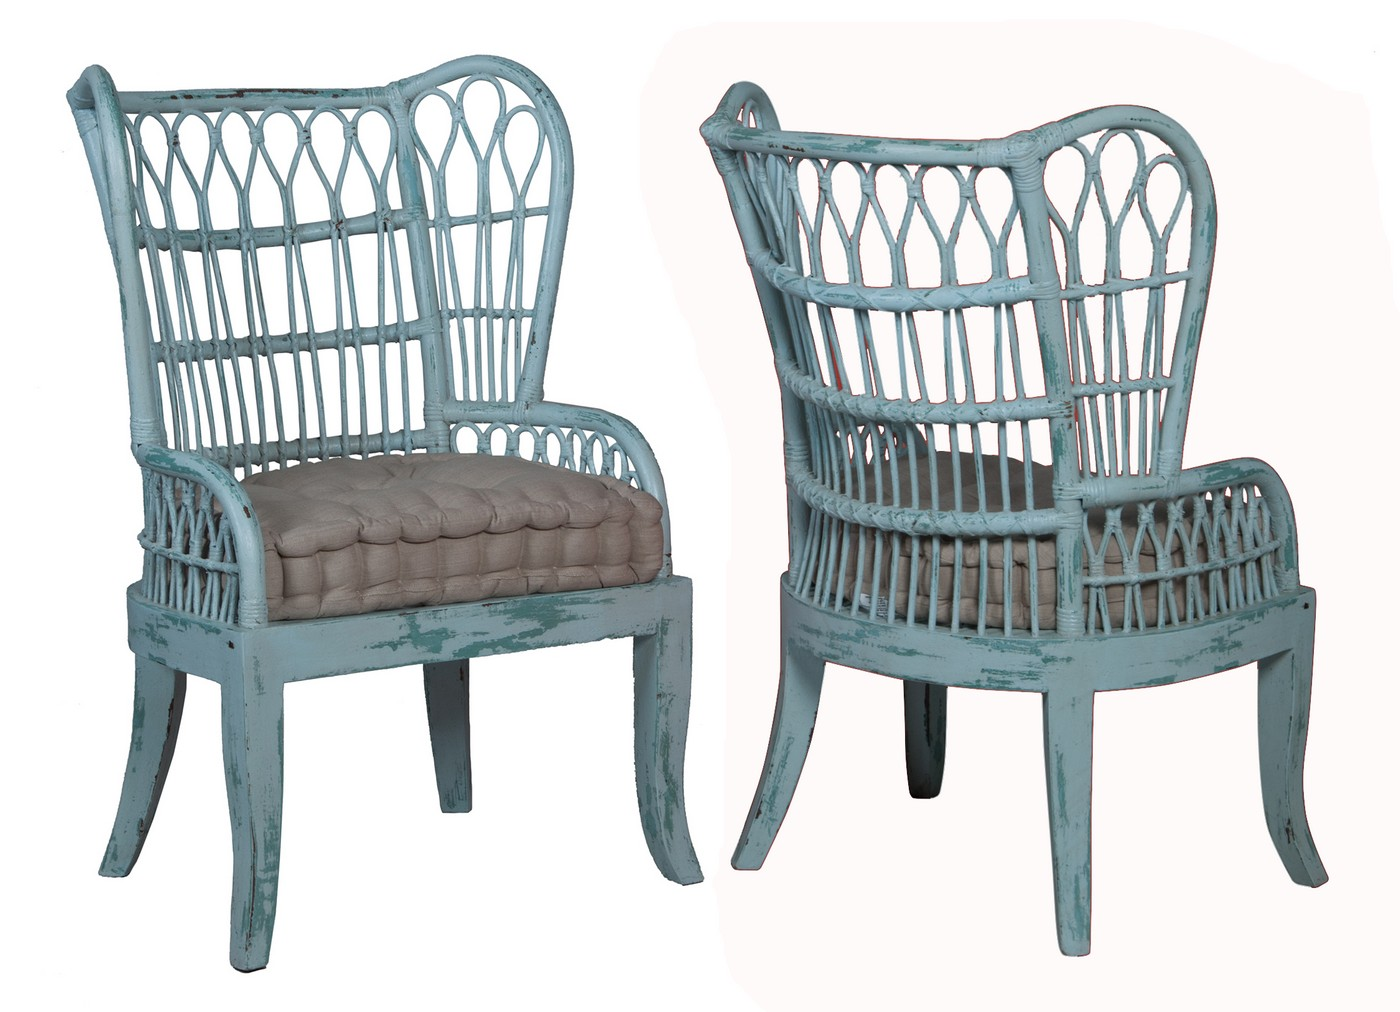 rattan wingback chairs chairpro wing back chair waterfront cooled blue